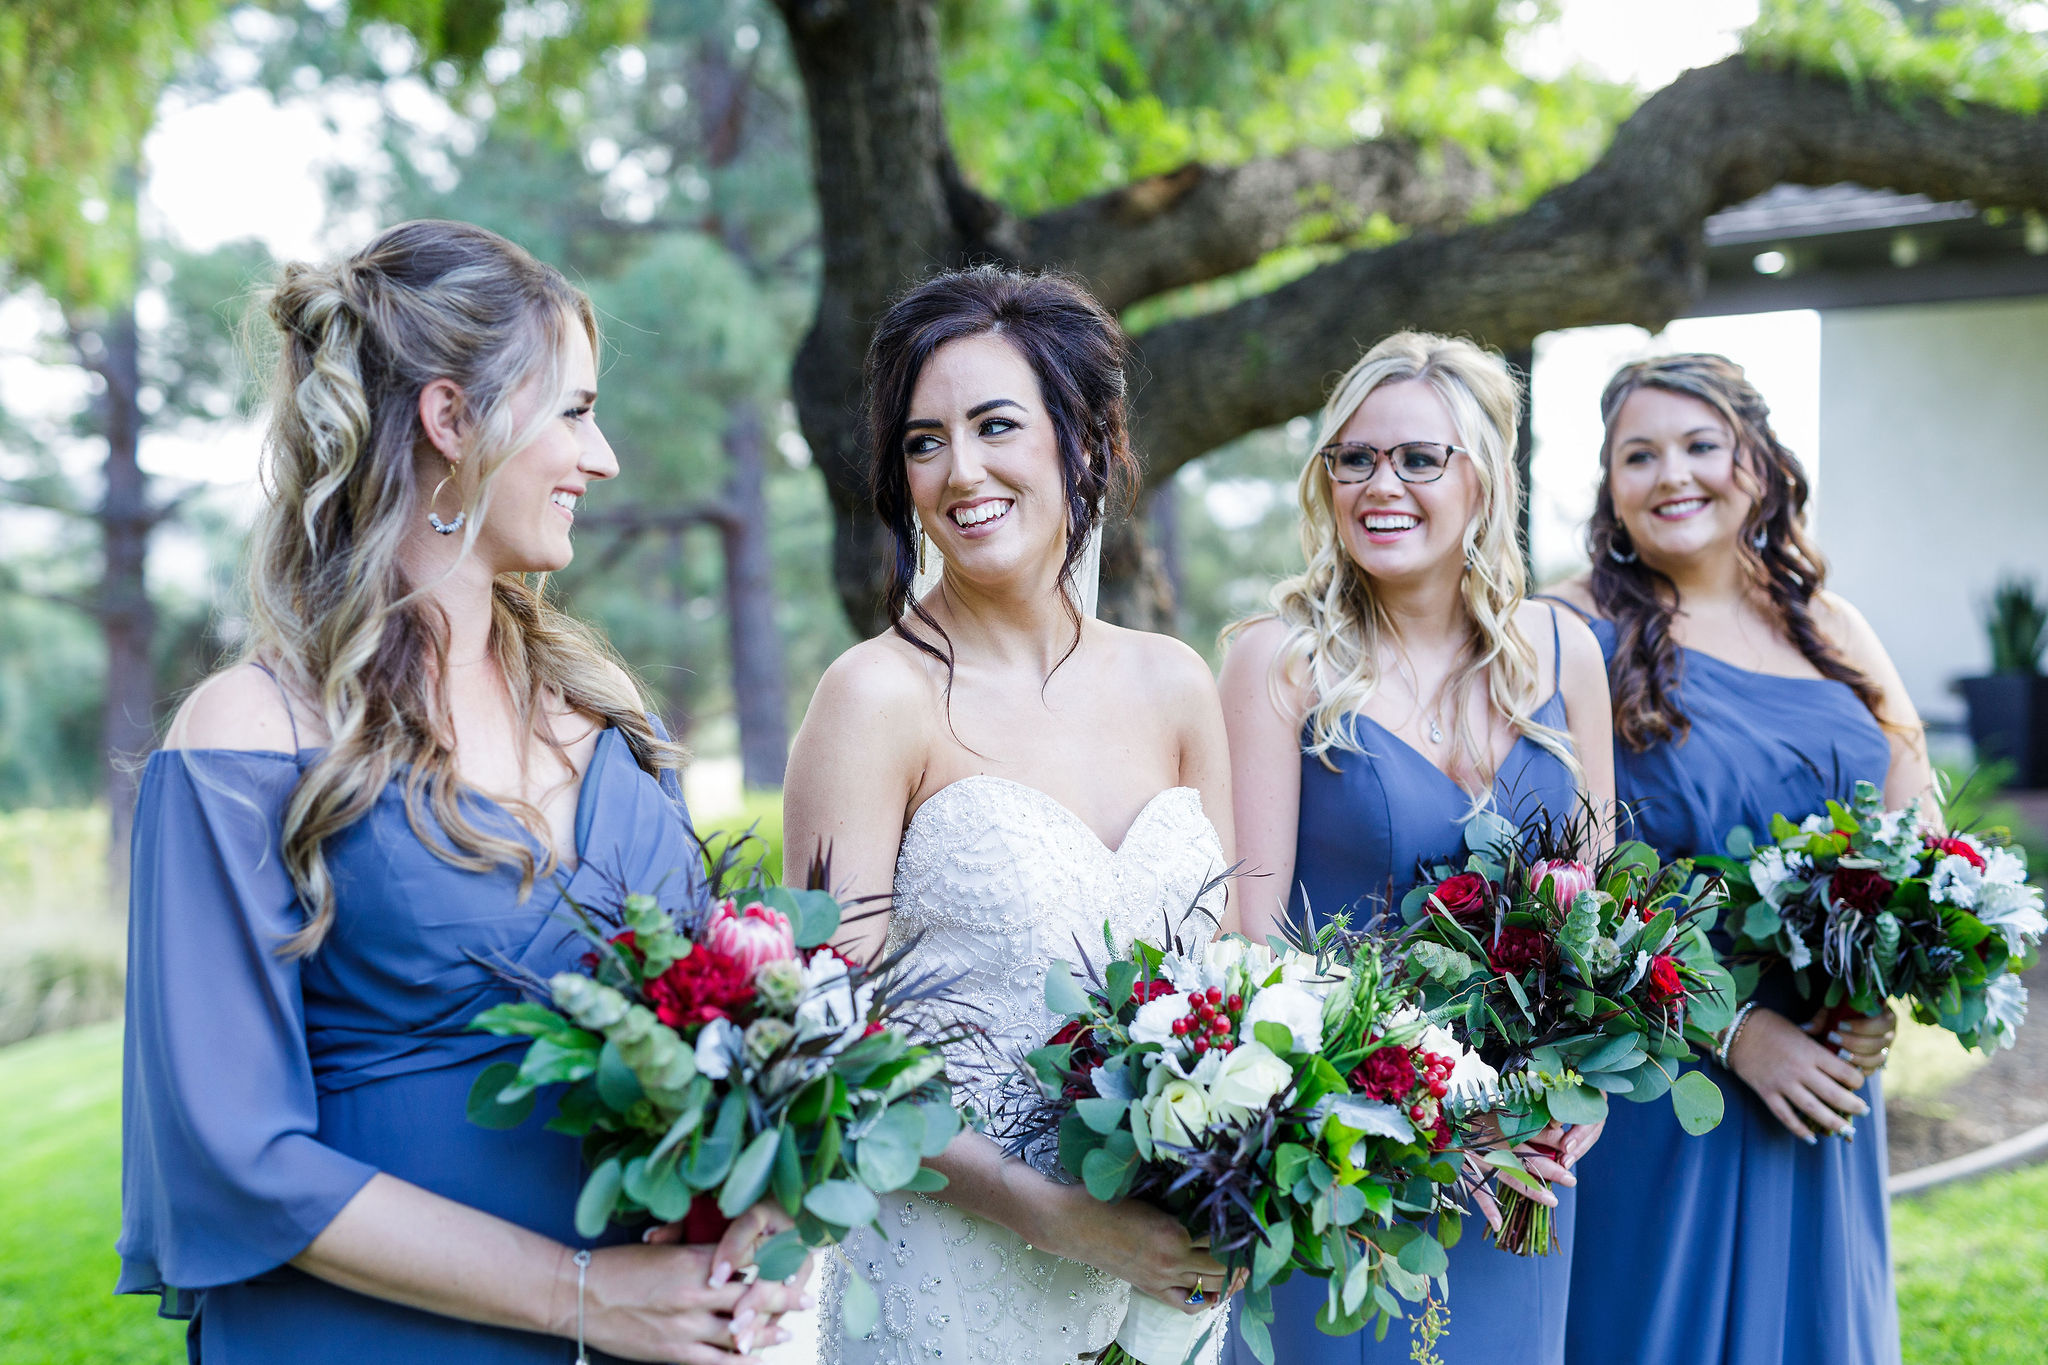 www.santabarbarawedding.com | Kiel Rucker | Greengate Ranch | Kramer Events | De La Fleur Flowers | Bianca's Bridal | Bride with Bridesmaids